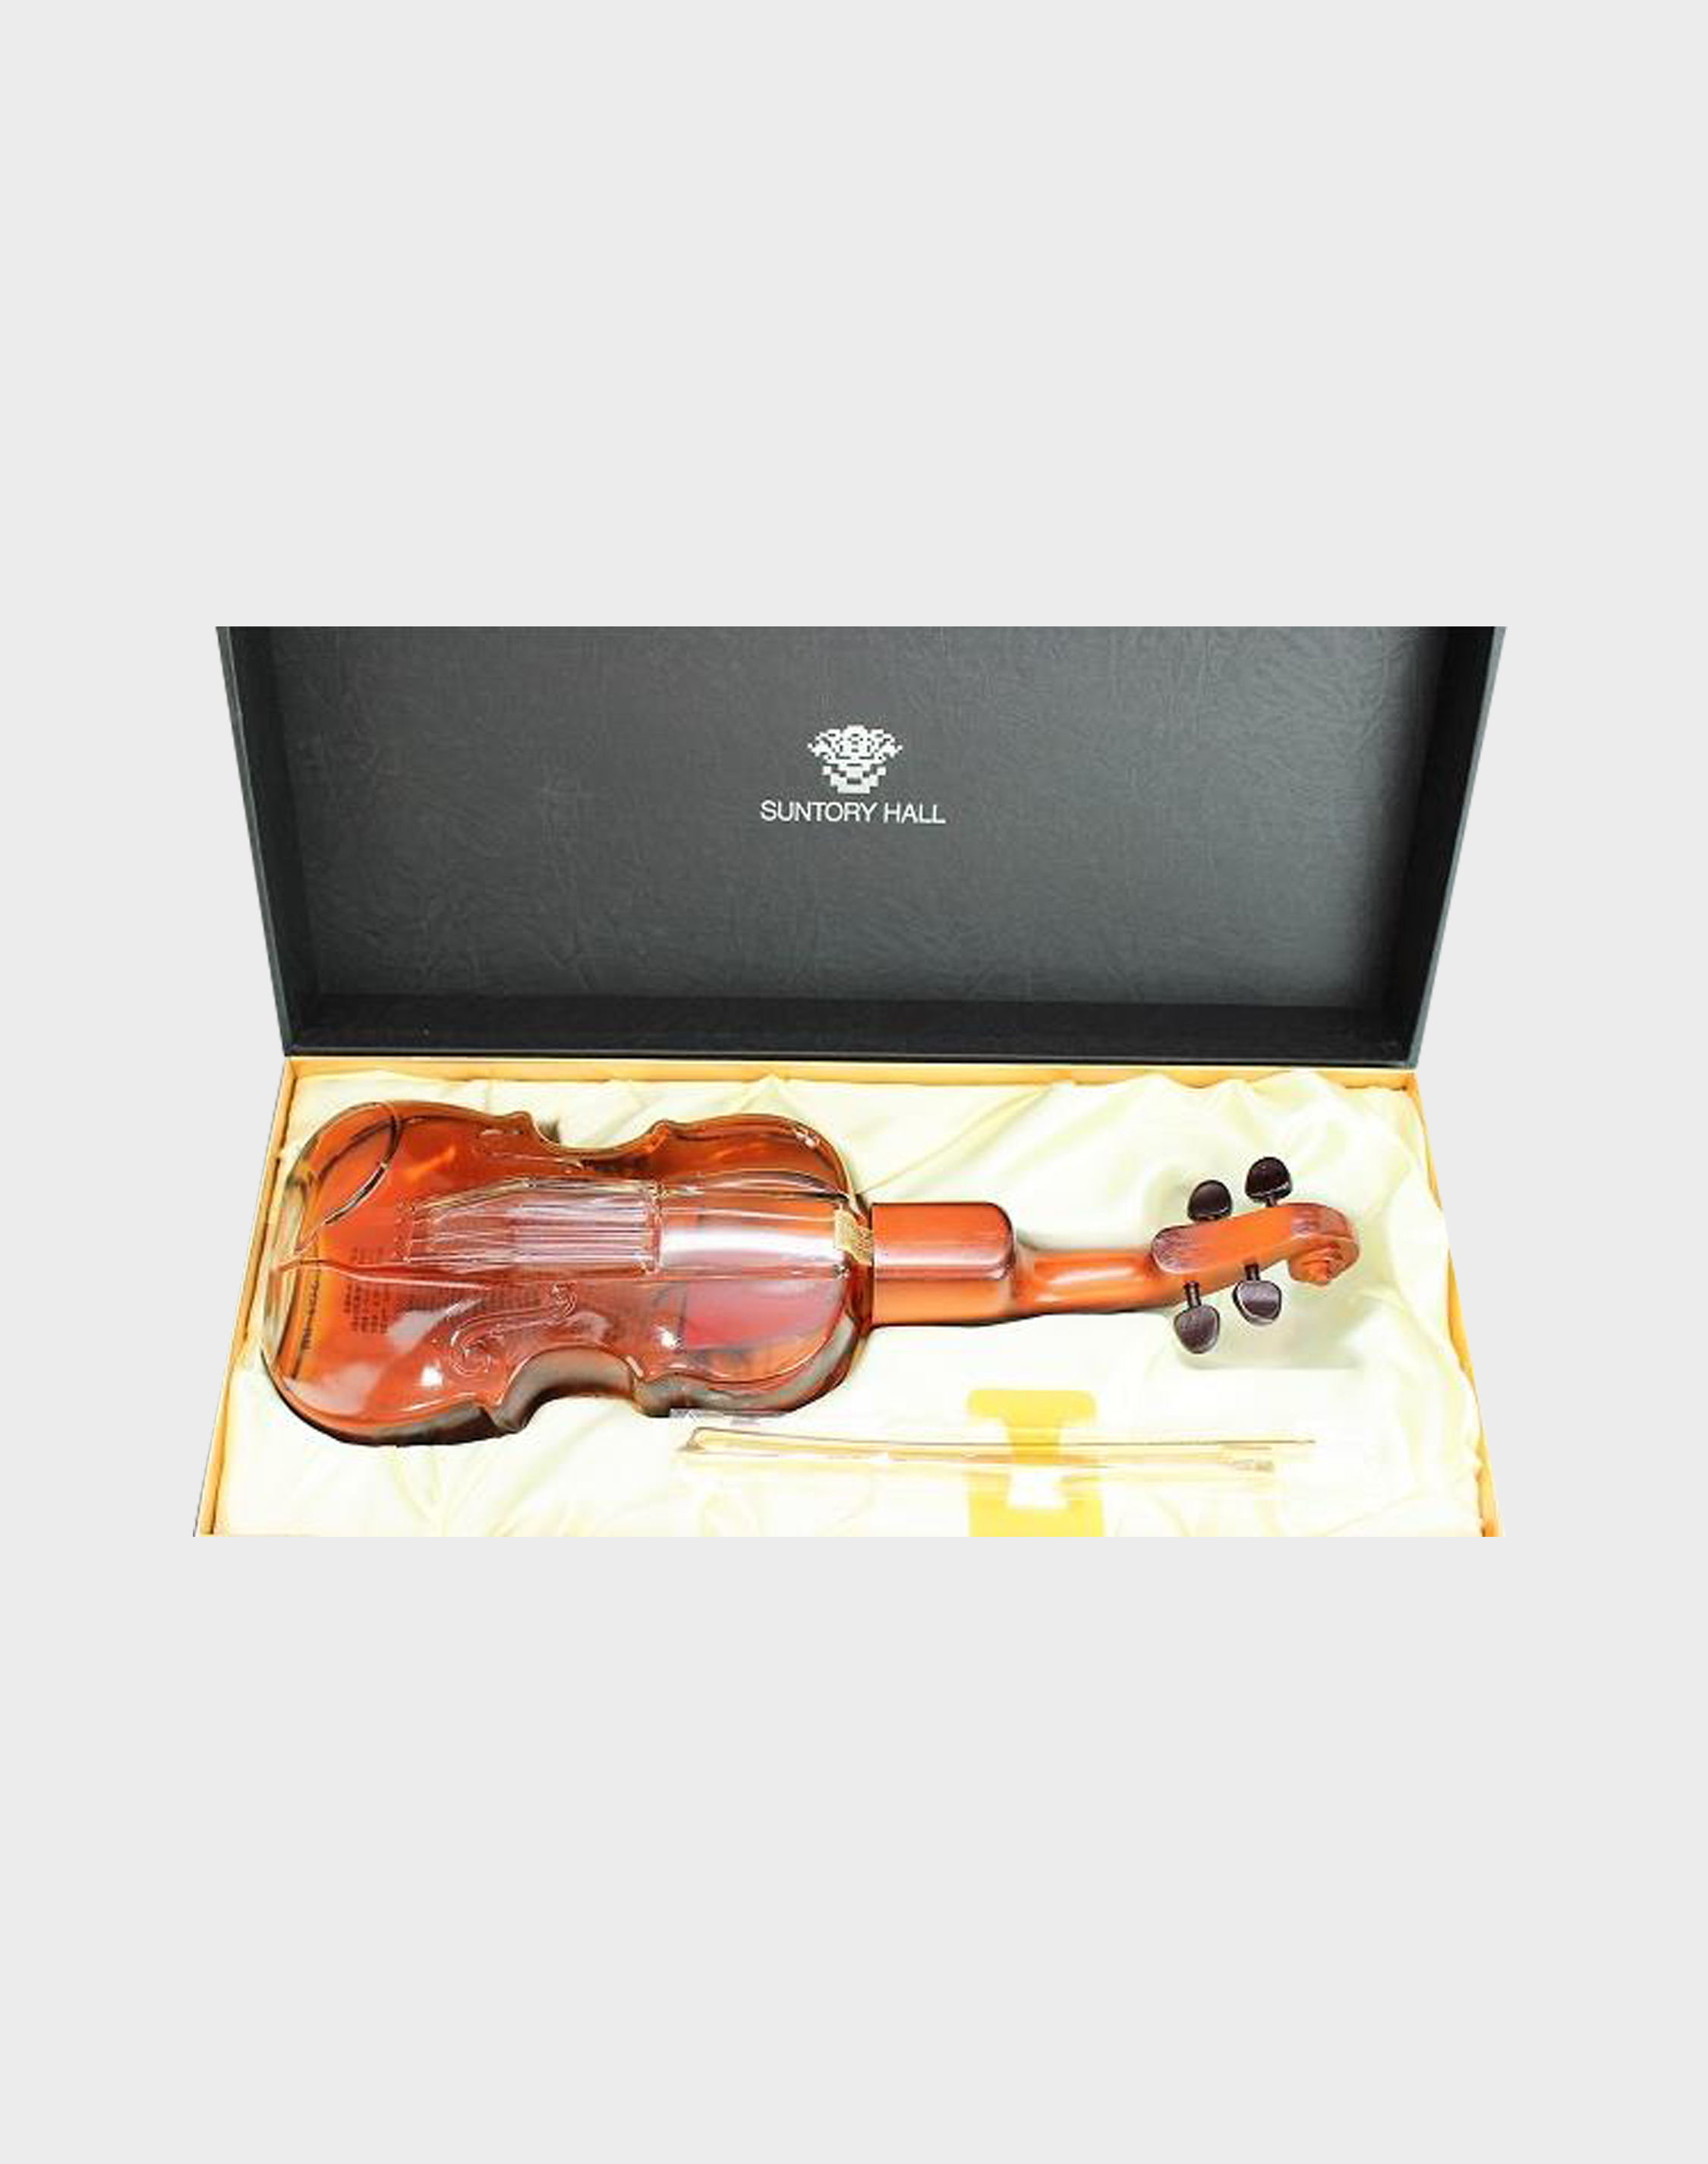 Suntory Royal Musical Instrument Violin Bottle Whisky